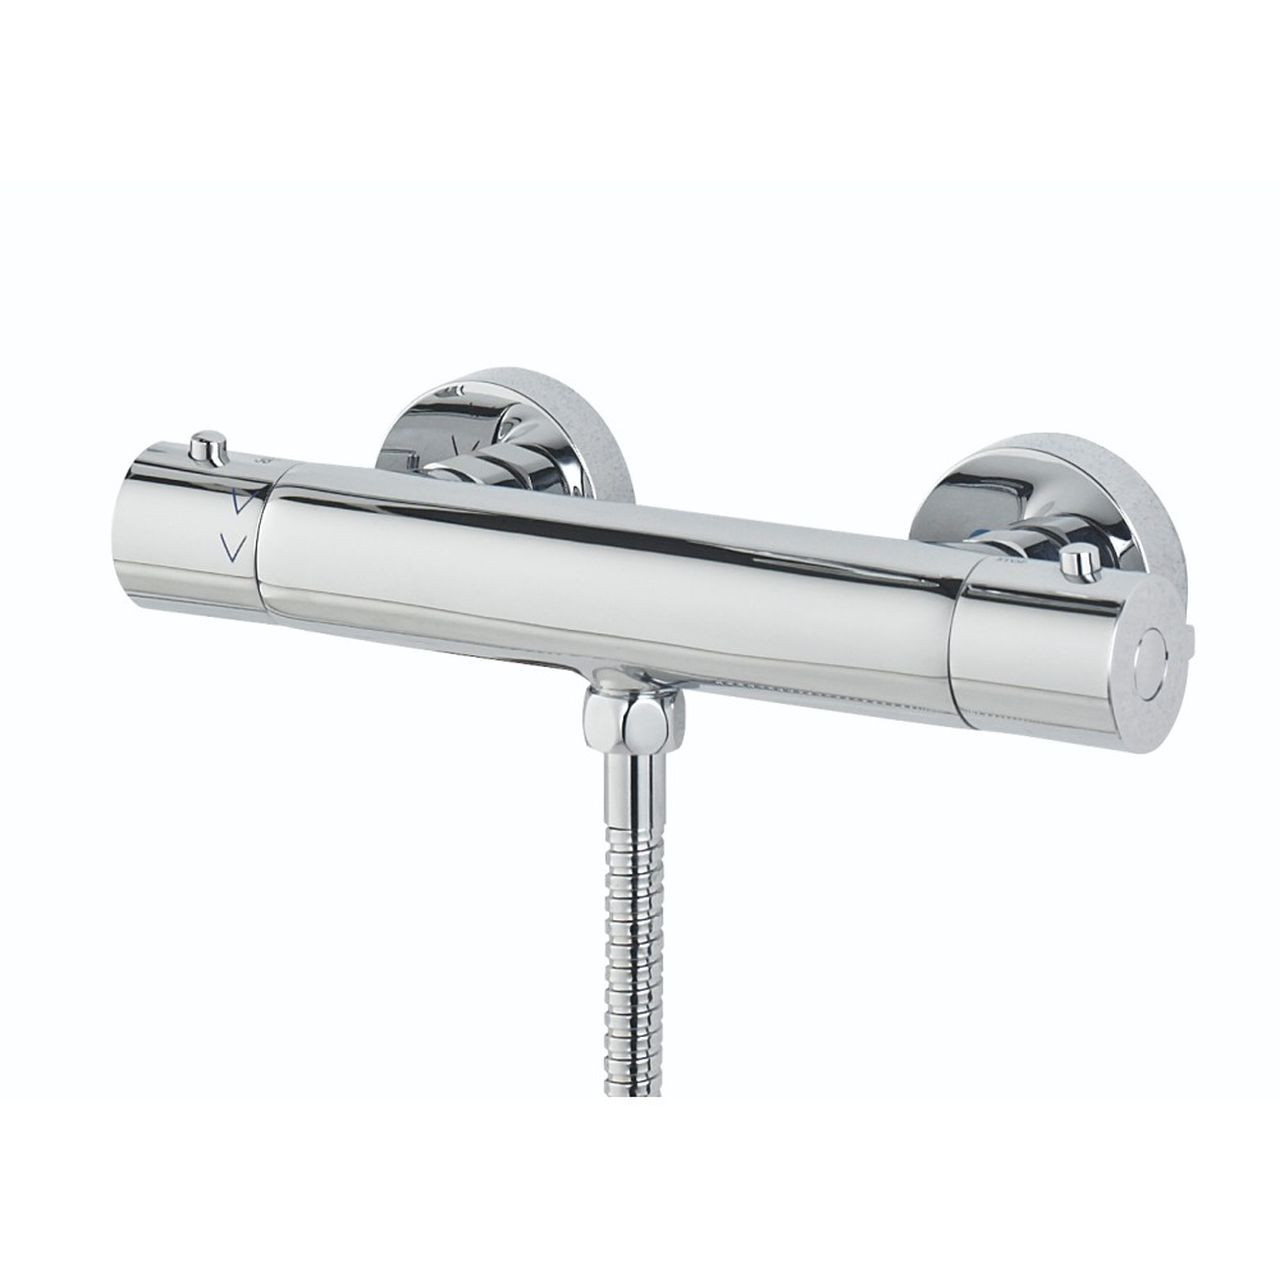 Bristan Frenzy Chrome Cool Touch Thermostatic Bar Shower Mixer with Fast Fit Connections - FZ-SHXVOCTFF-C